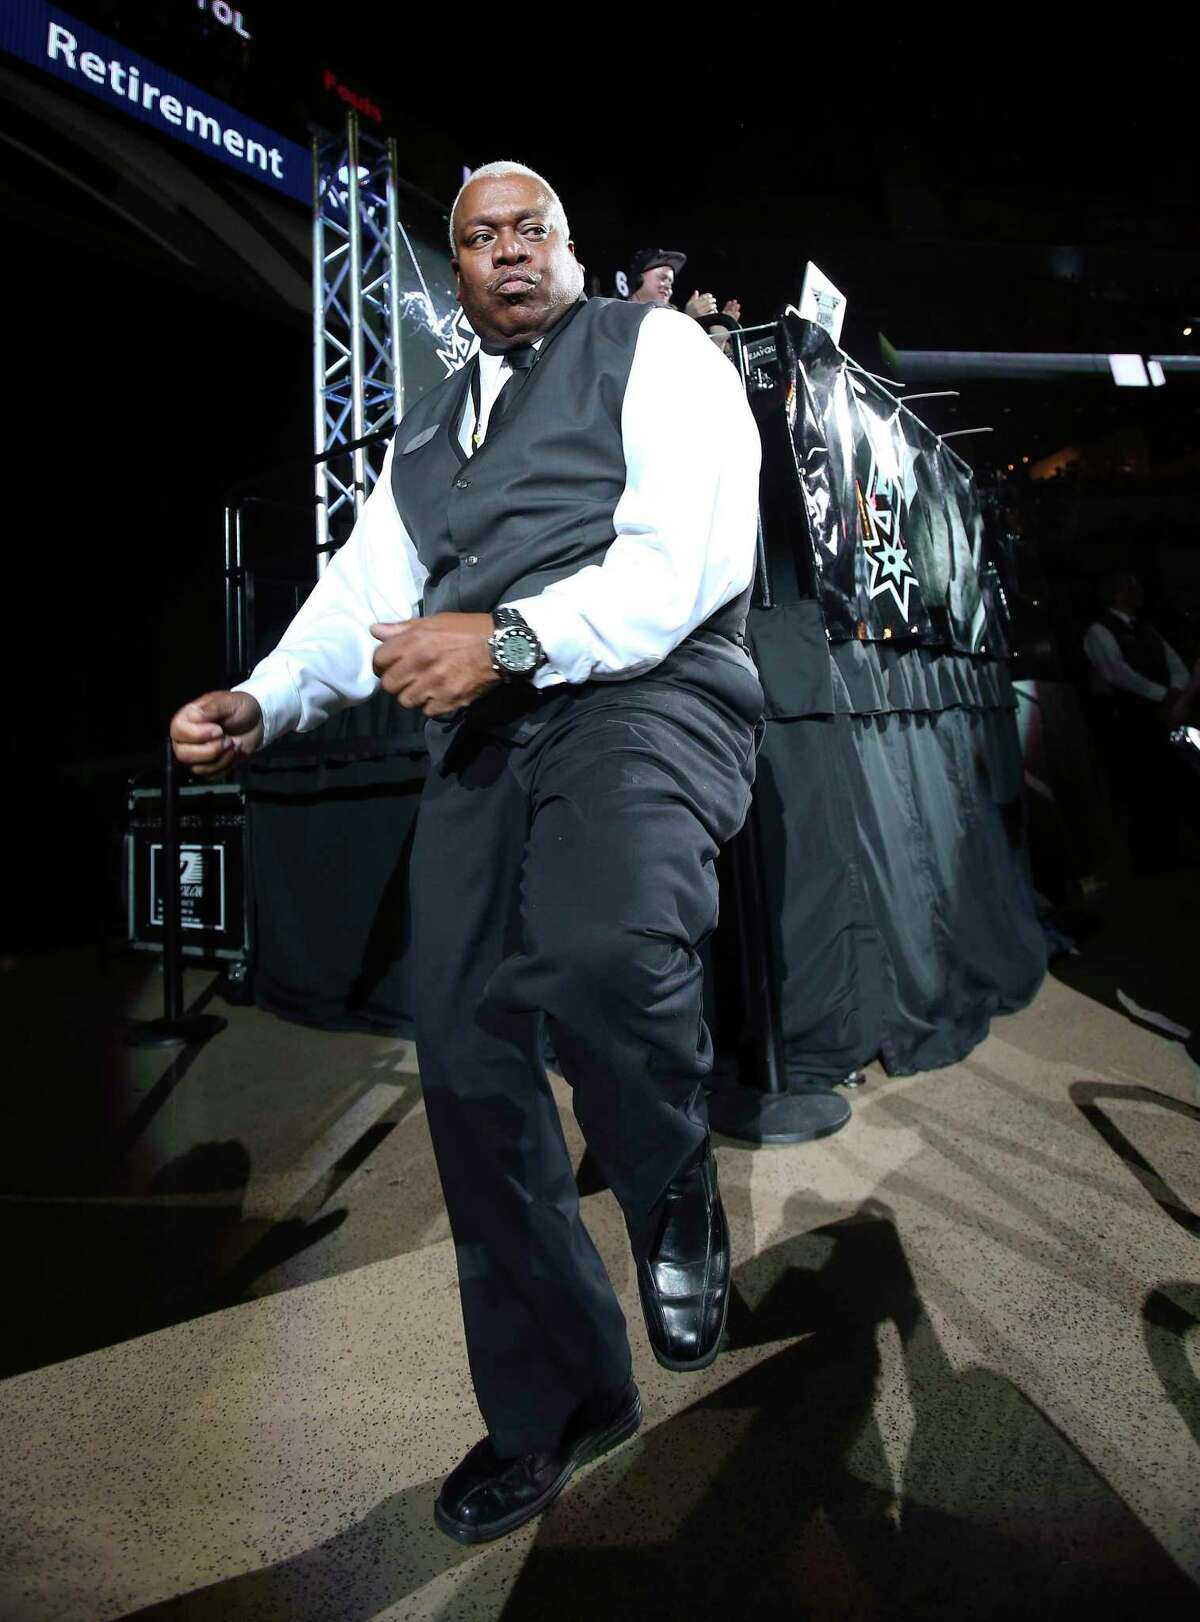 Like most NBA teams, the Spurs are playing in emptied arenas, but they aren't entirely without fans when the AT&T Center employees are ushering in the excitement. (Eric Byrd dancing at a game in December 2014)